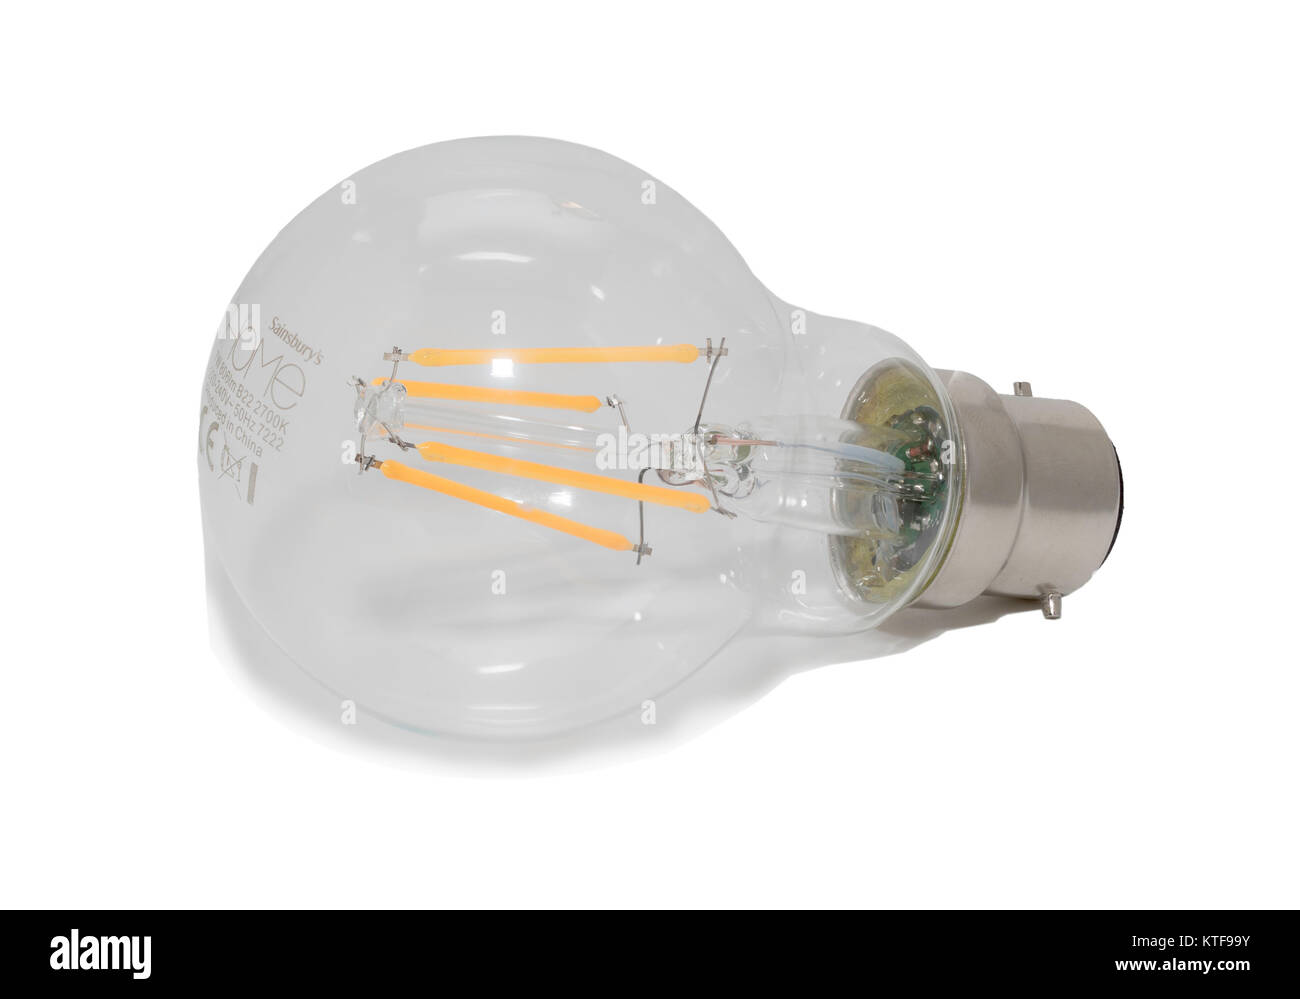 Sainsbury's 7W dimmable LED filament light bulb, B22 bayonet fit, England, UK - Stock Image